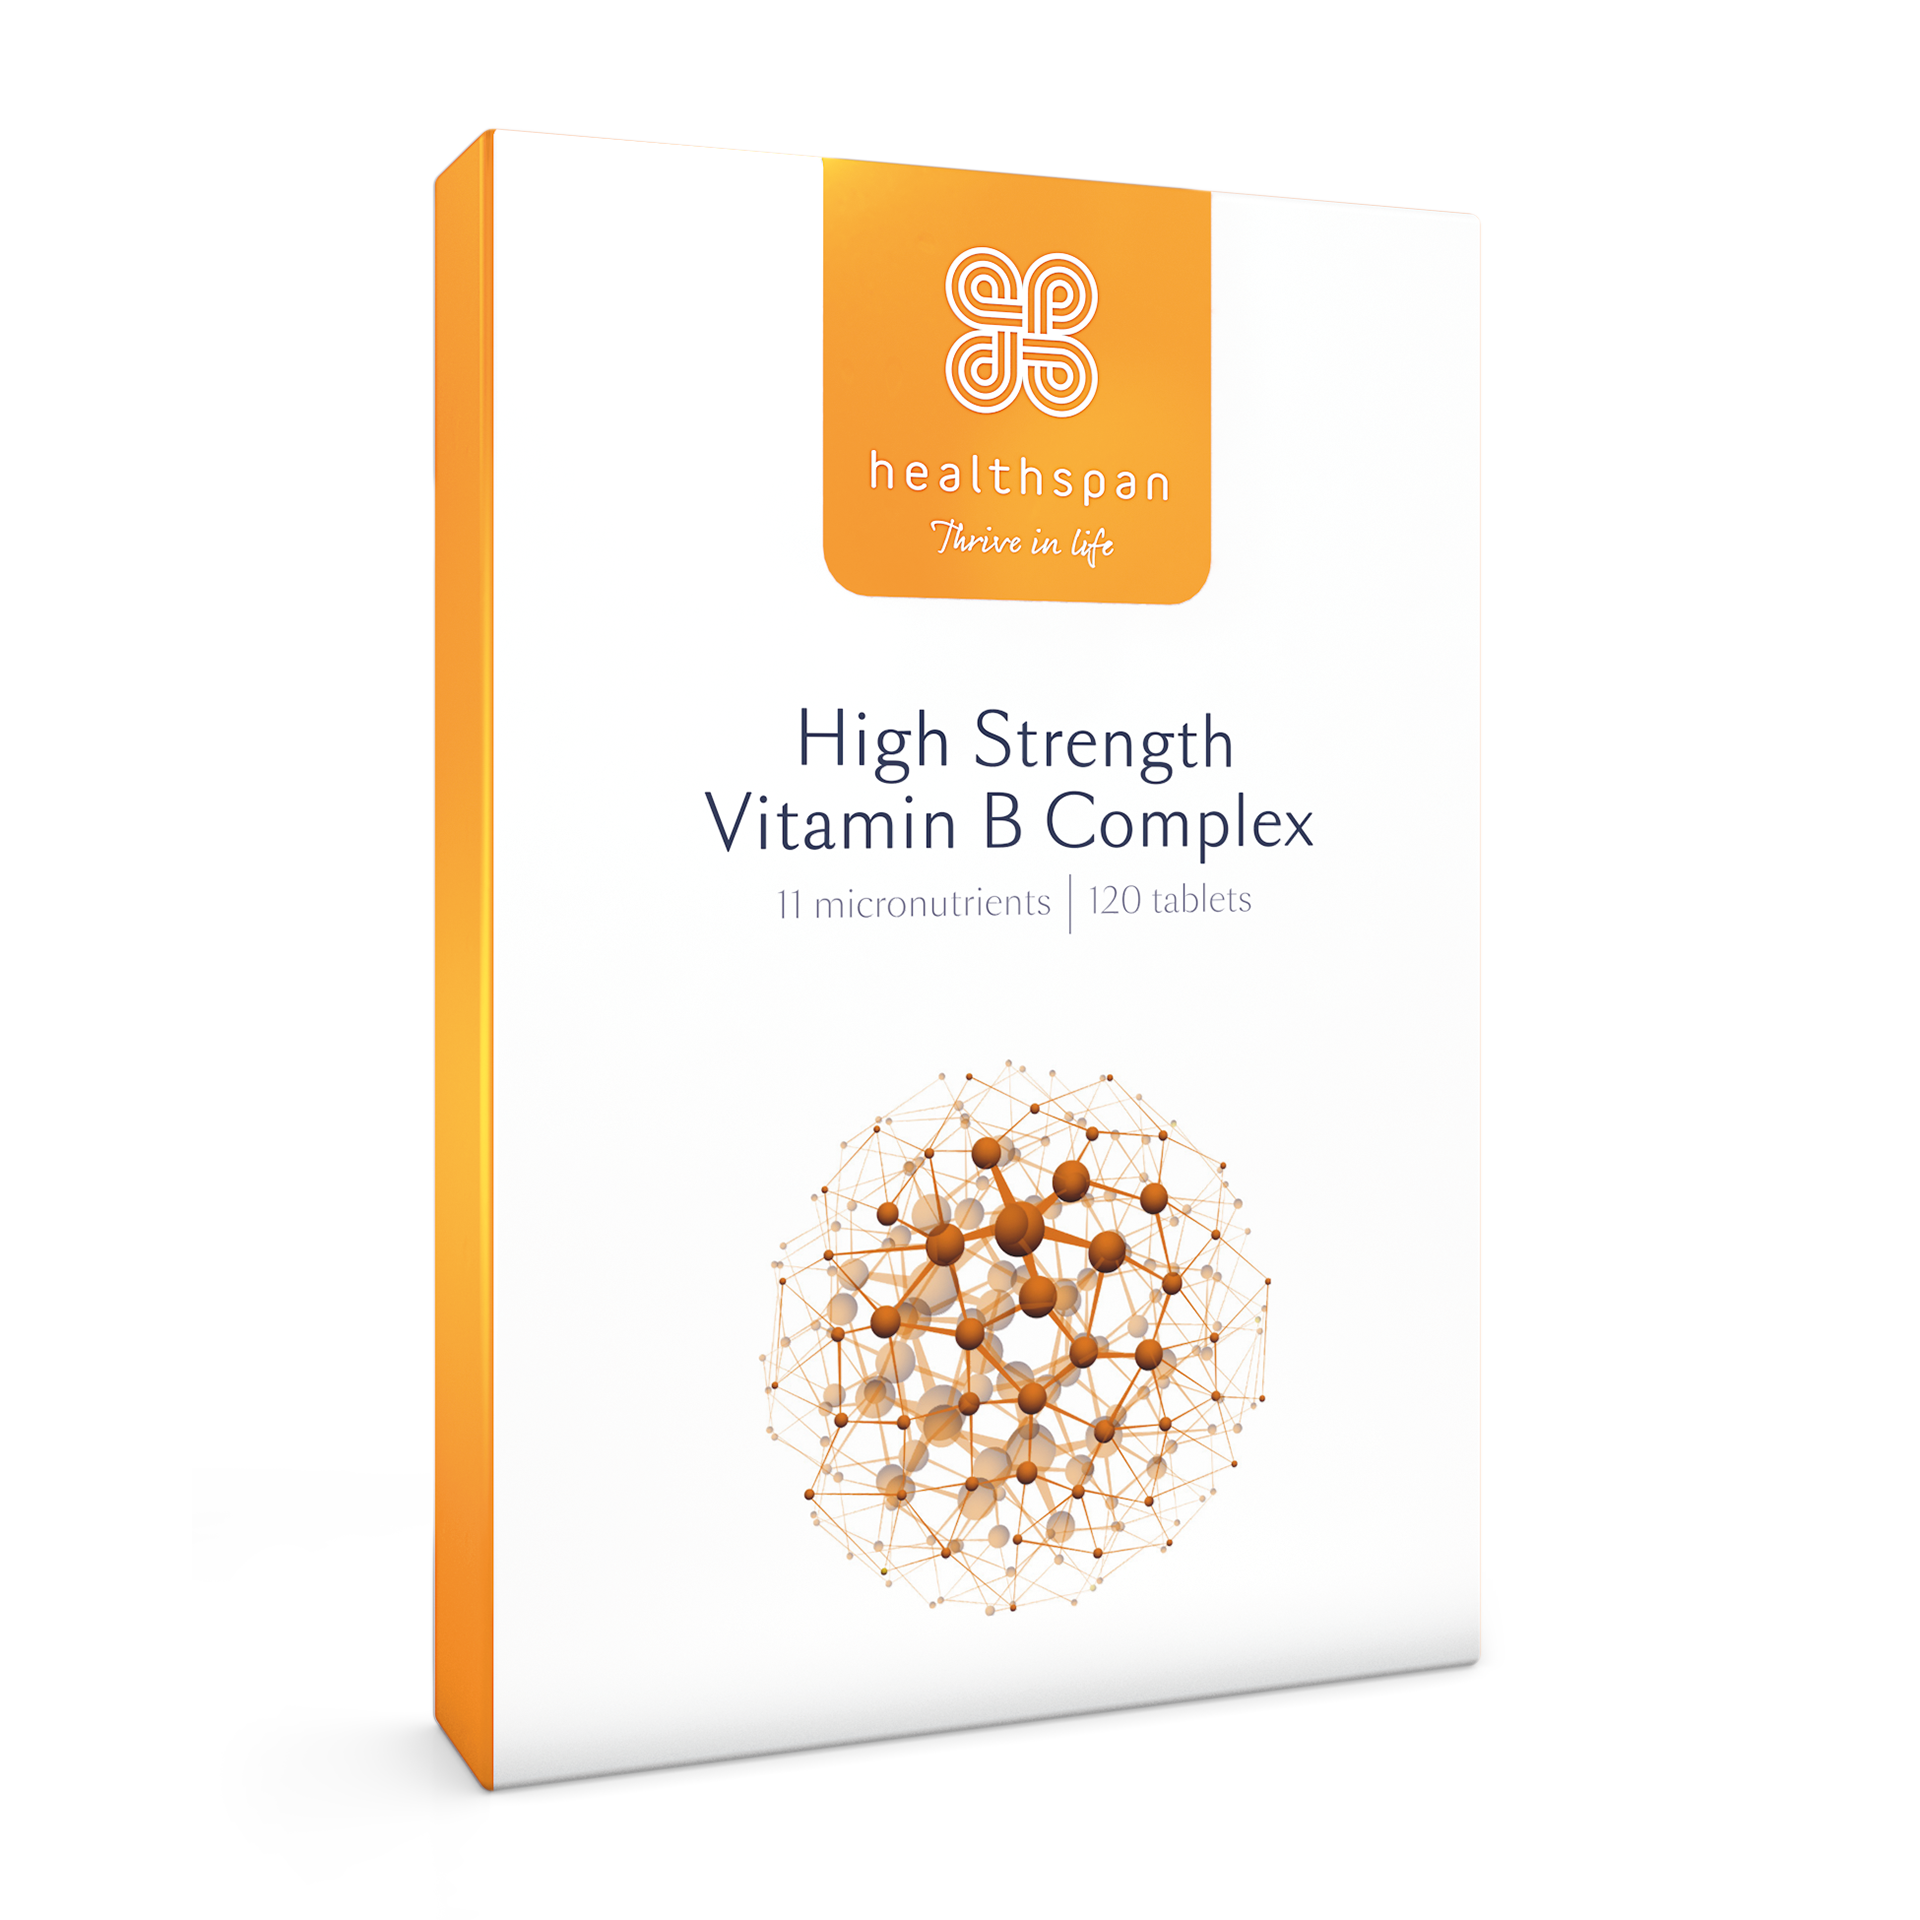 High Strength Vitamin B Complex